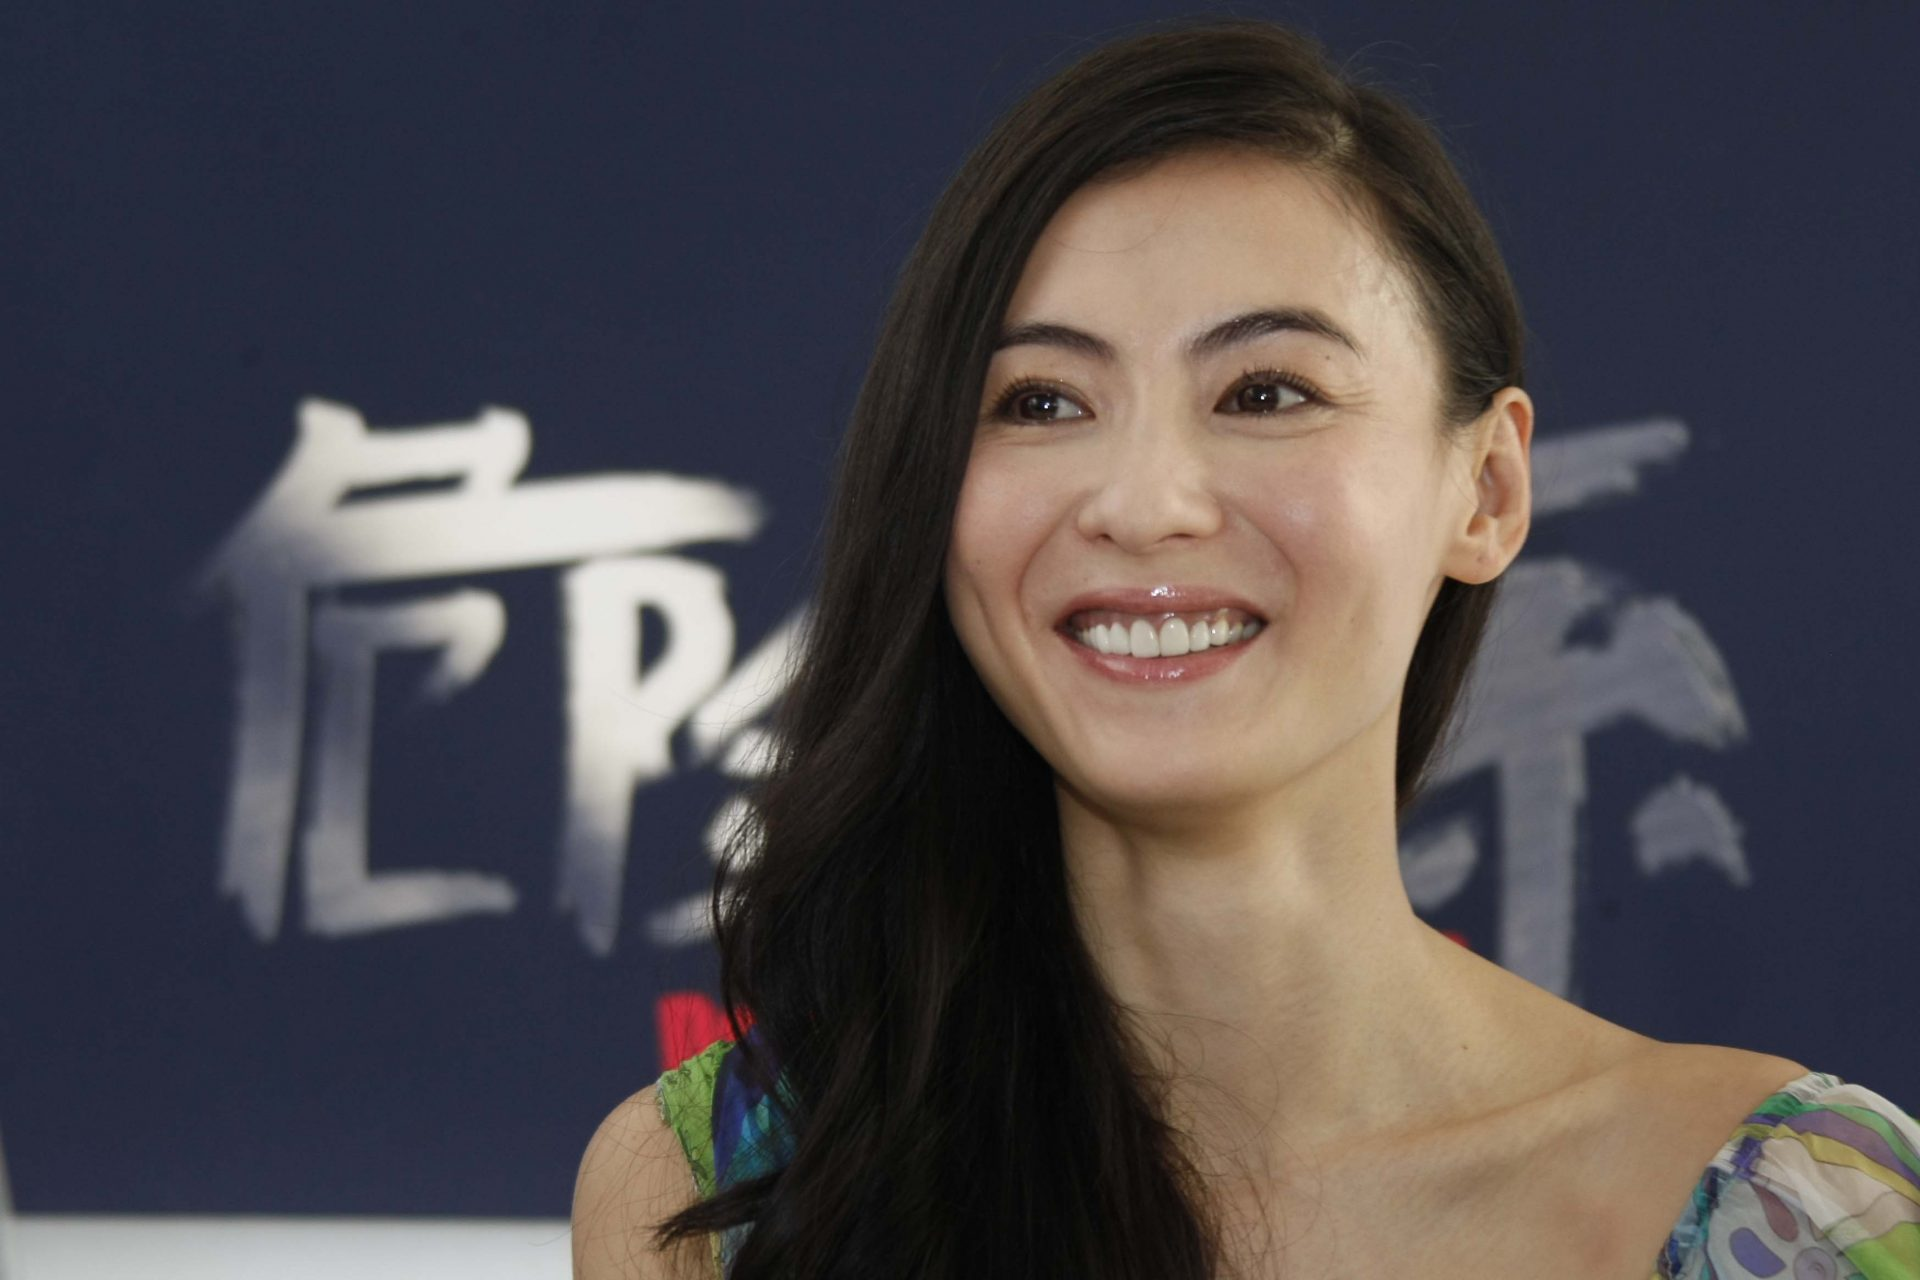 Actress Cecilia Cheung bounces back after 2008 photo scandal with Edison Chen